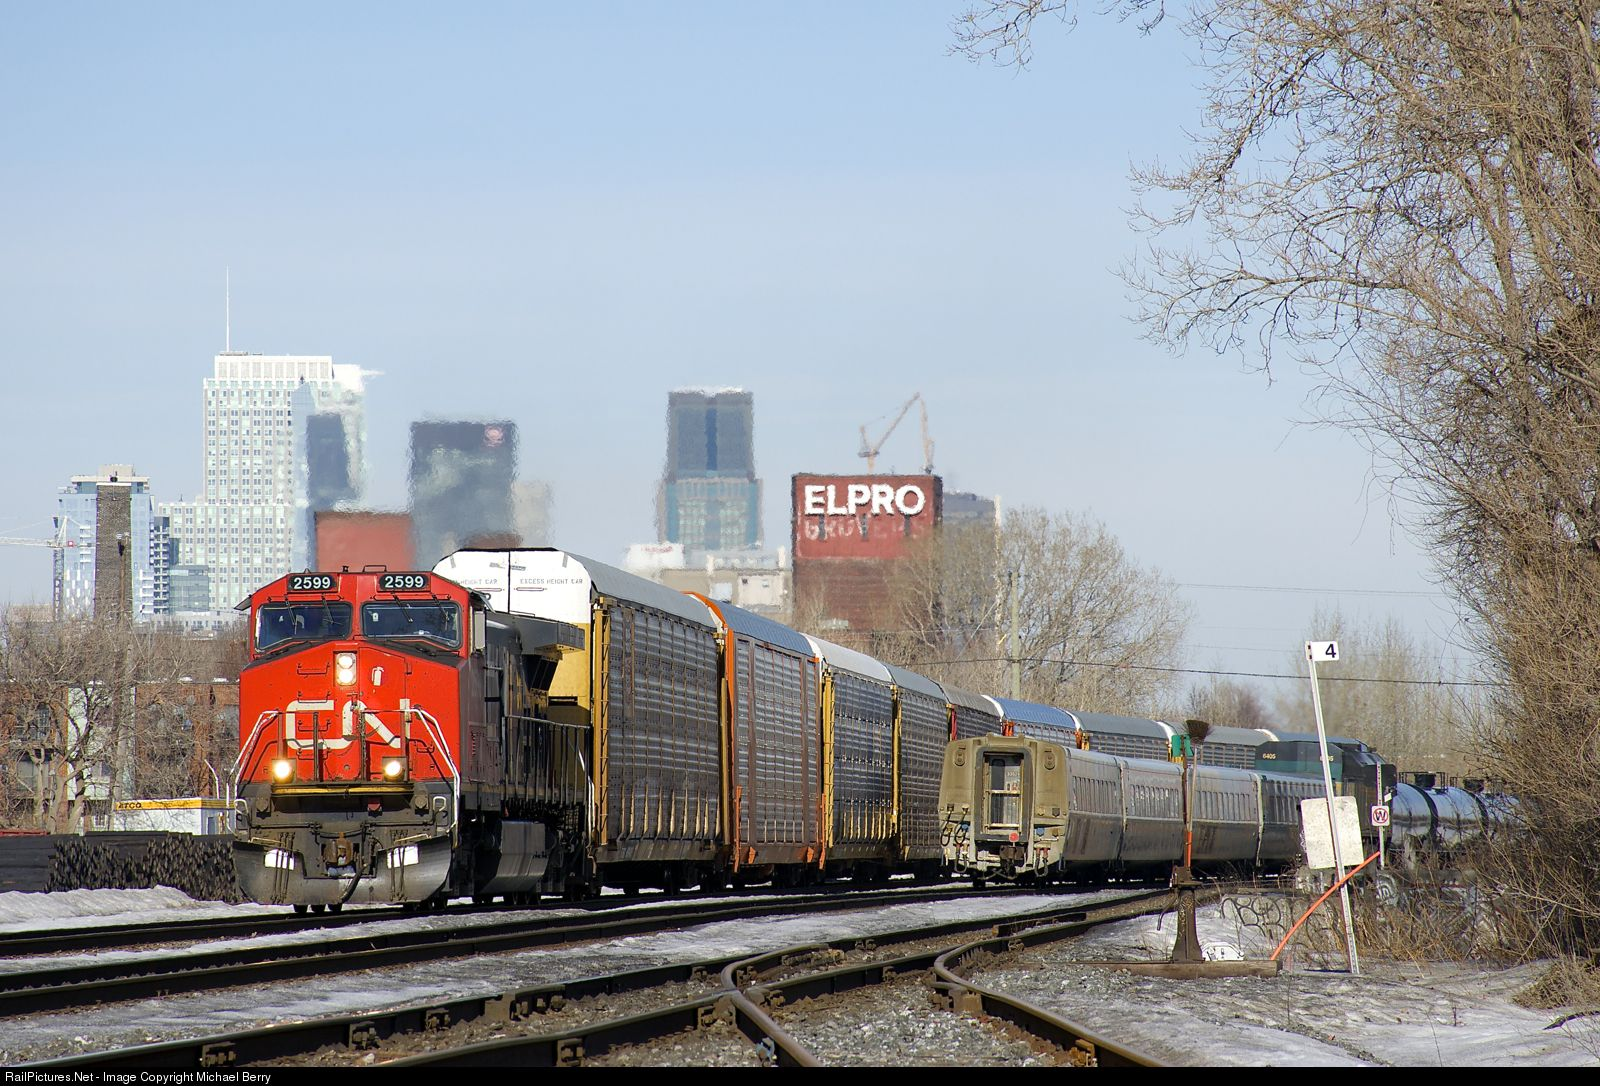 Net Photo: CN 2599 Canadian National Railway GE C44-9W (Dash 9-44CW) at  Montreal, Quebec, Canada by Michael Berry